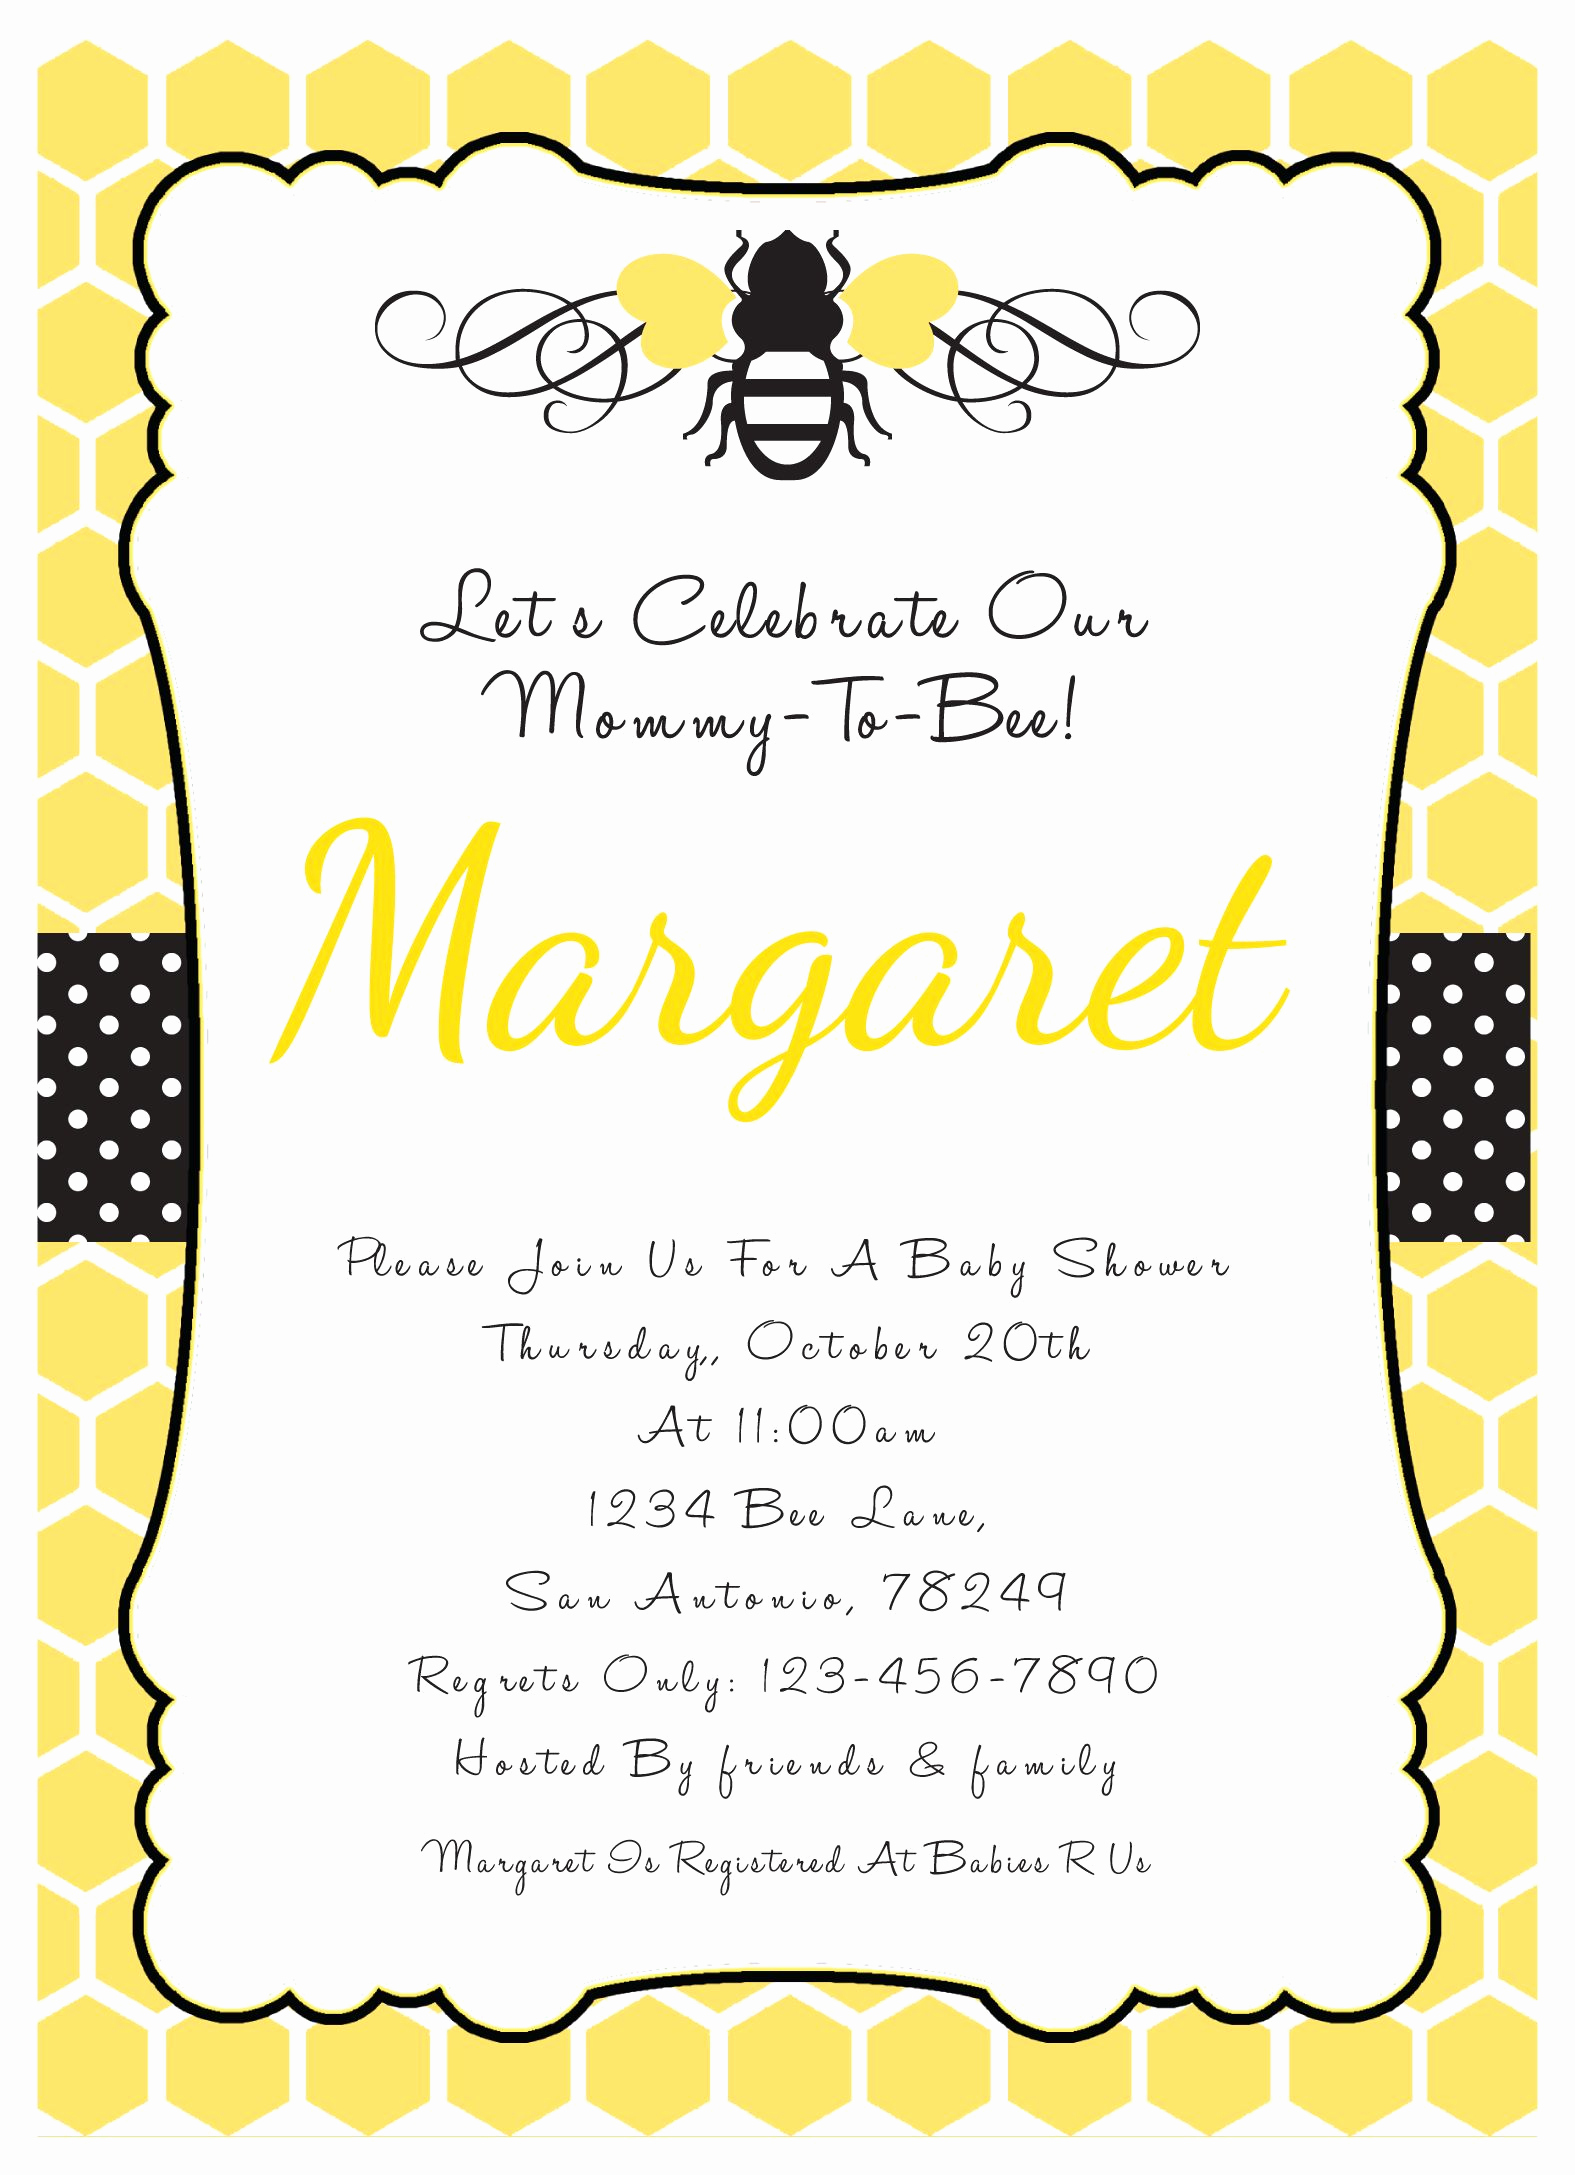 Free Bumble Bee Invitation Template New Bumble Bee Invitations Baby Shower Google Search